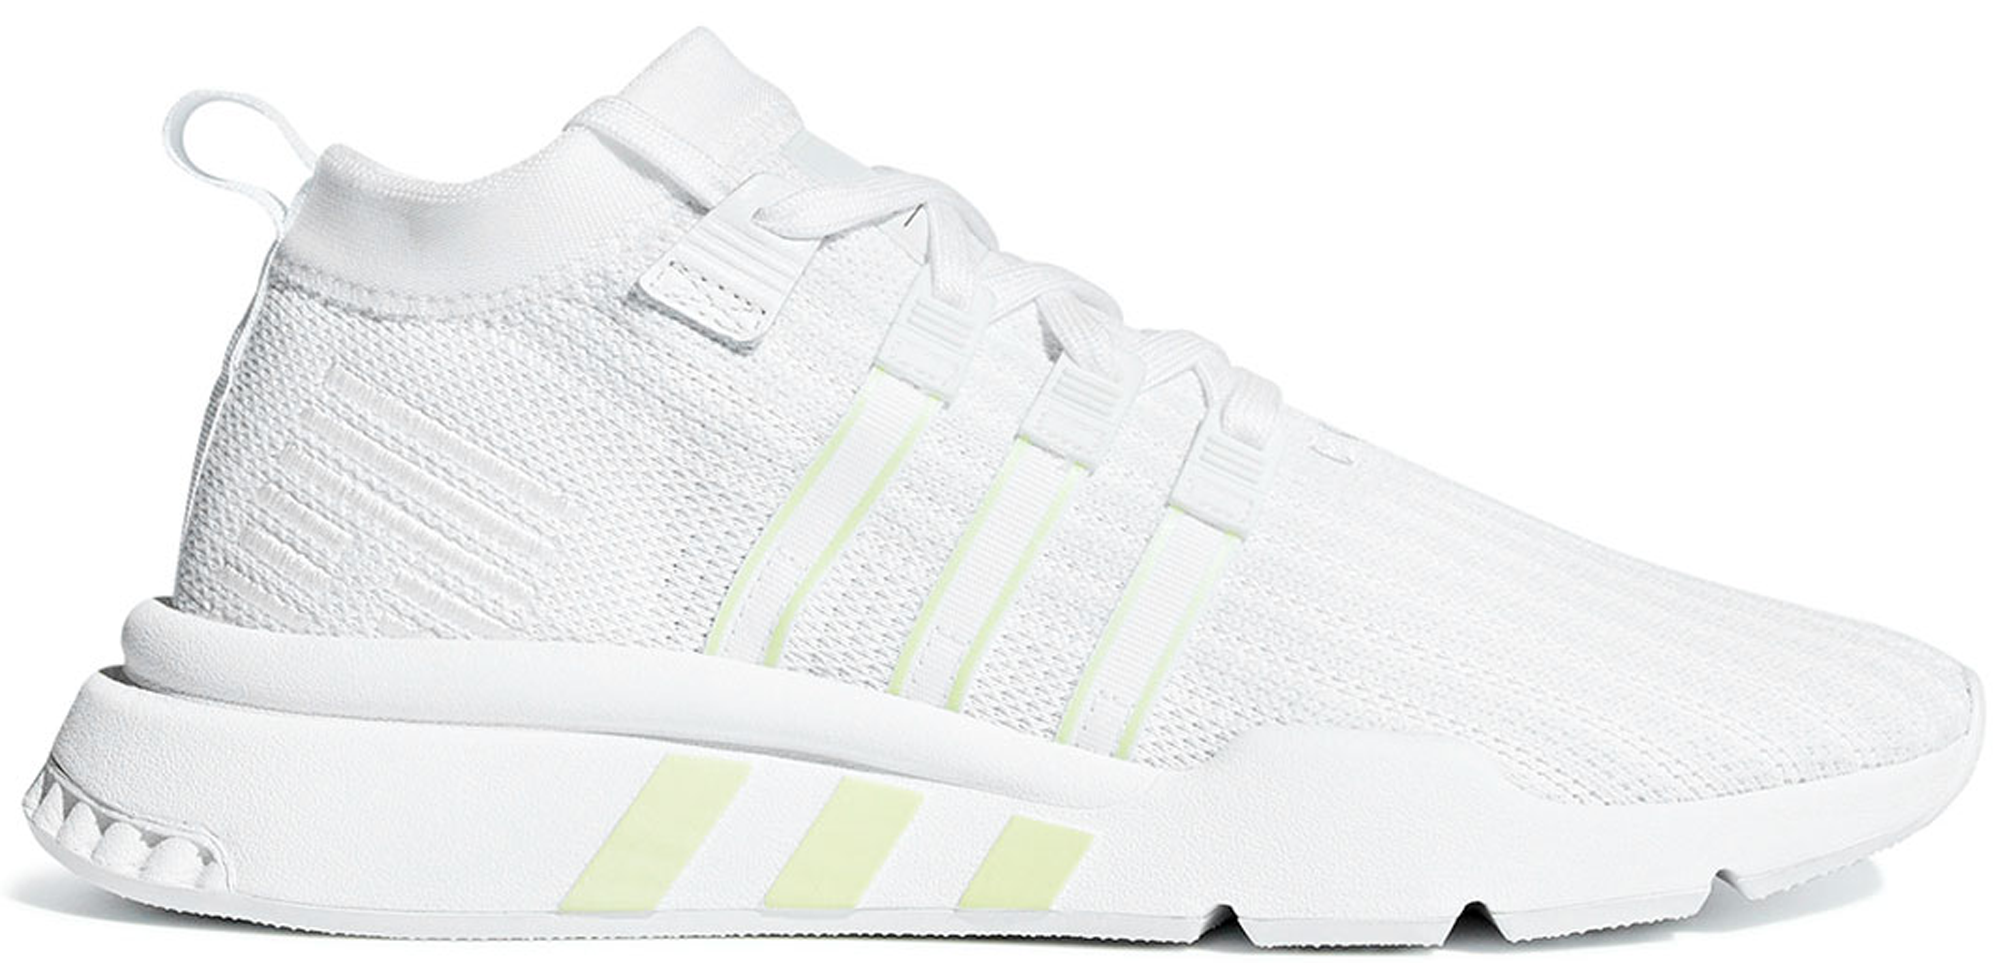 adidas EQT Support Mid Adv Cloud White